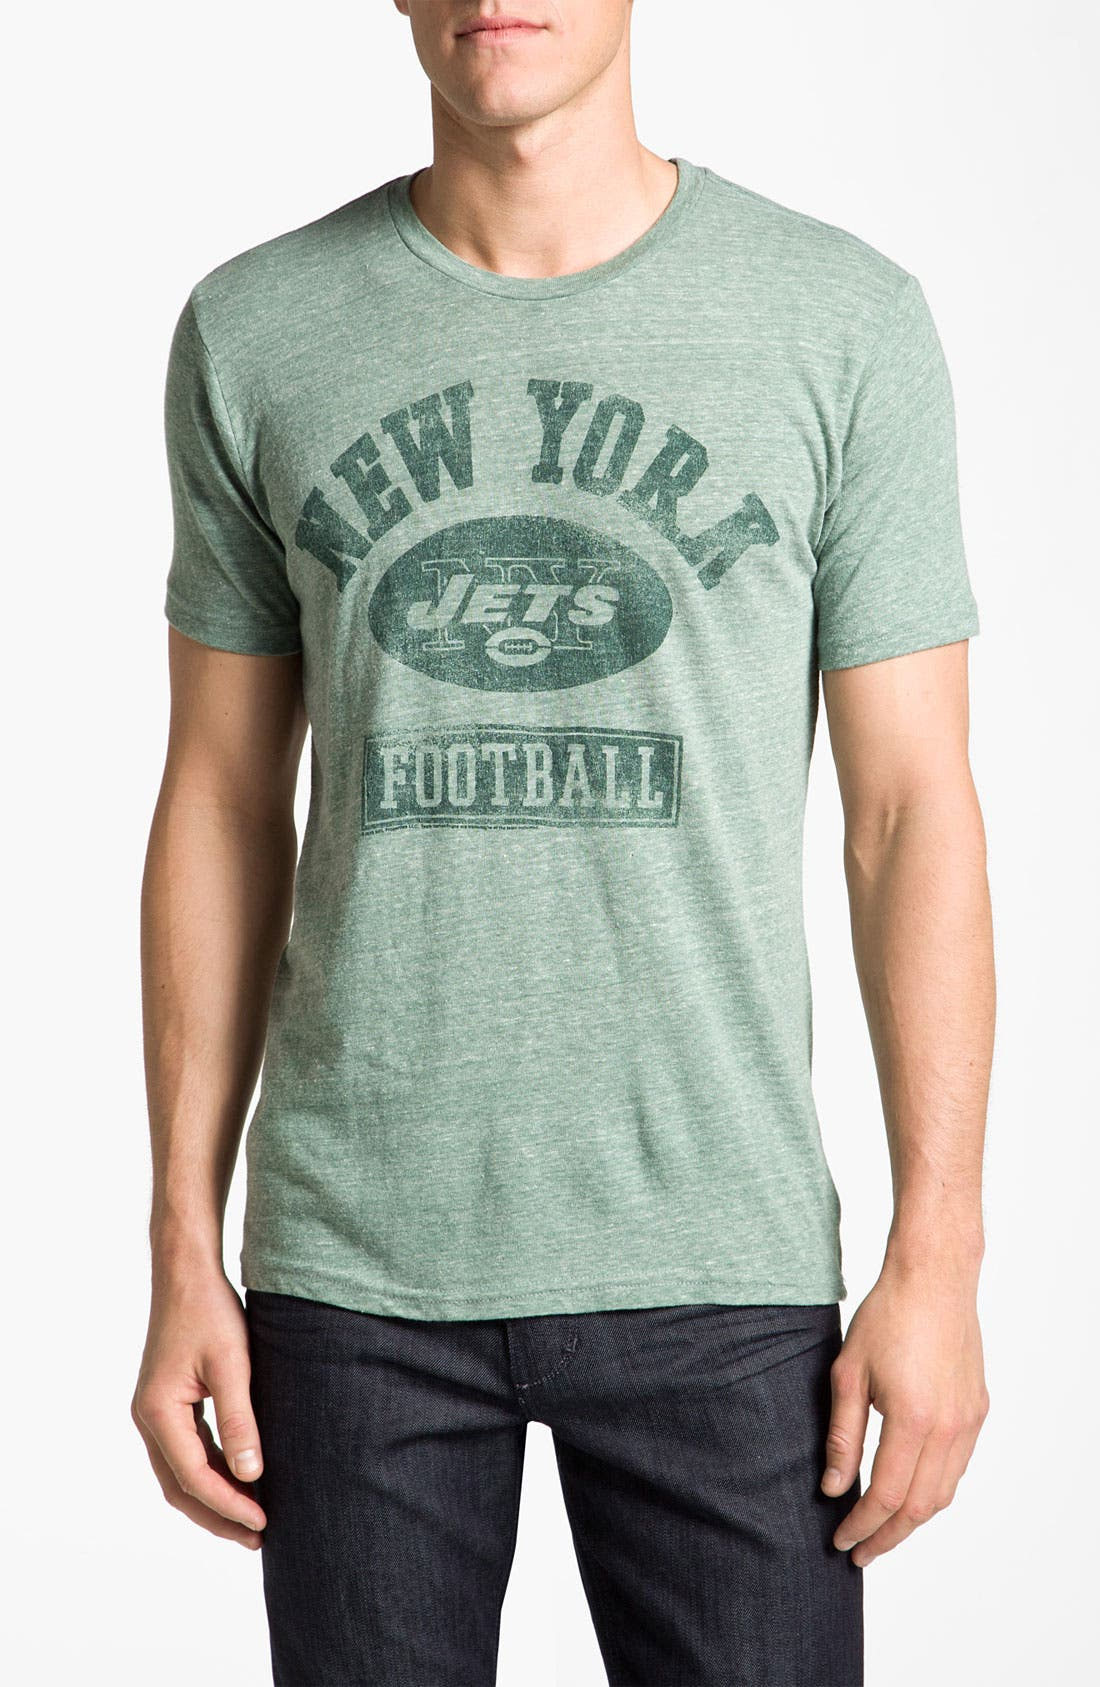 Main Image - Junk Food 'New York Jets' T-Shirt